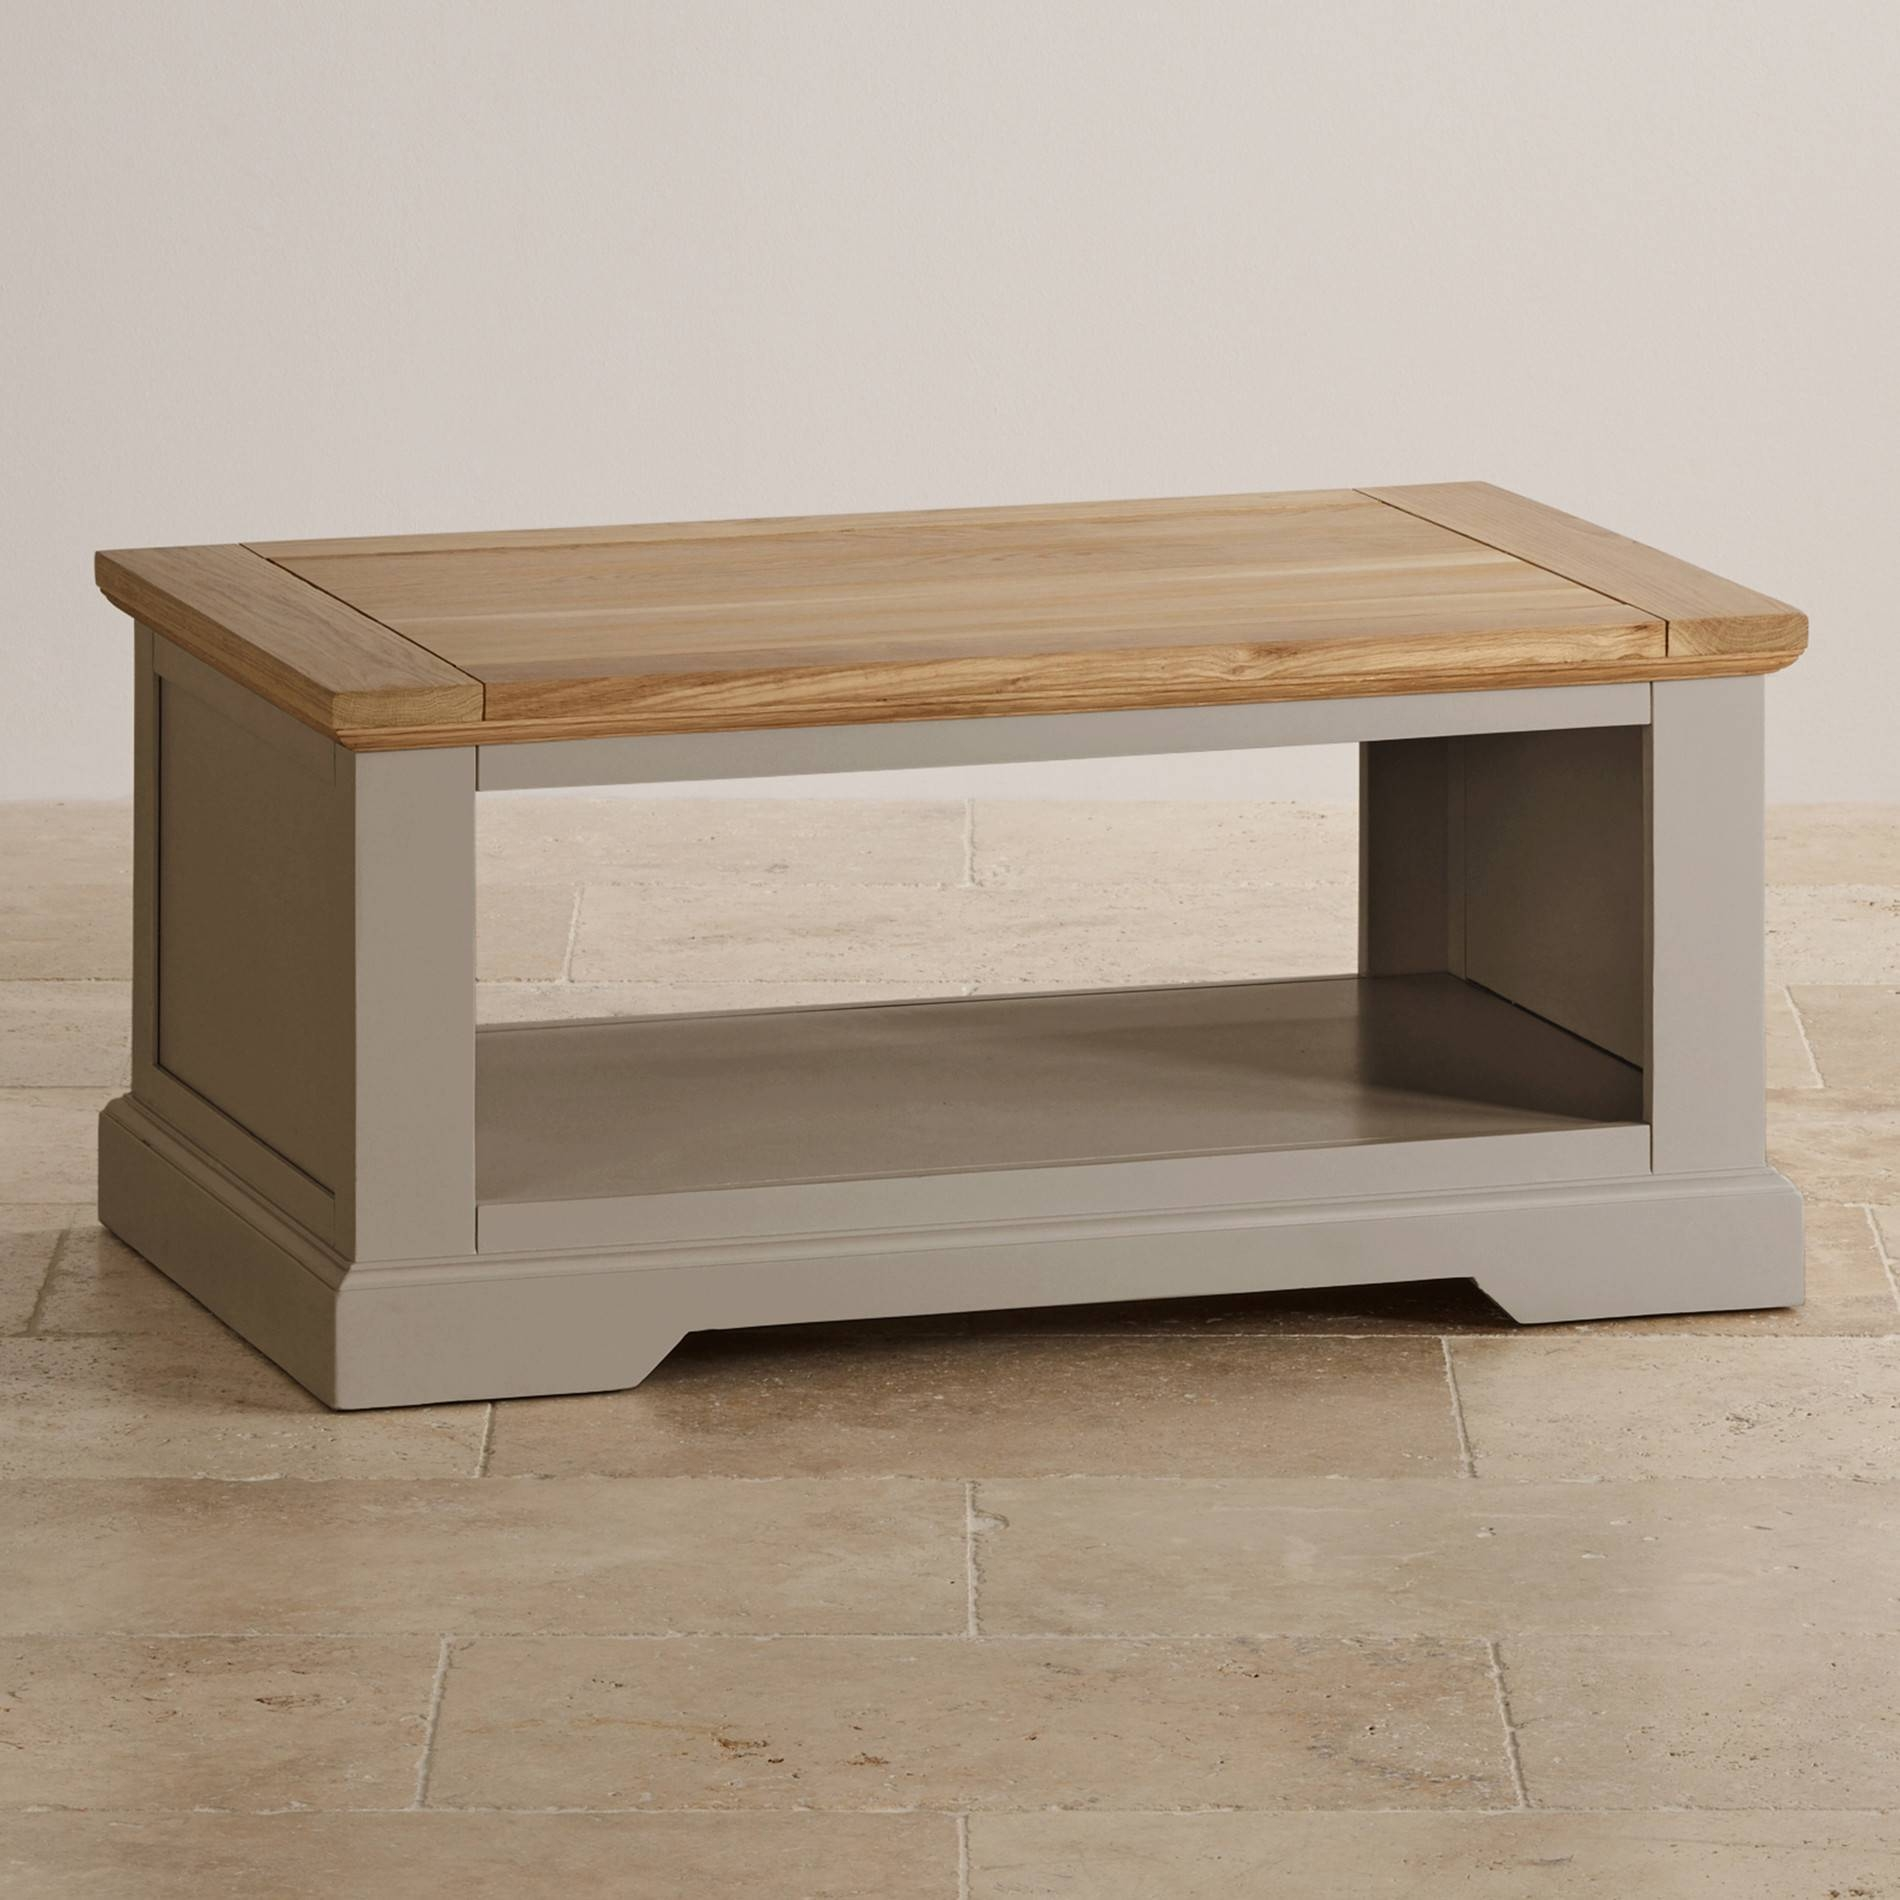 St Ives Coffee Table In Light Grey Painted Natural Oak within Light Oak Coffee Tables (Image 13 of 15)